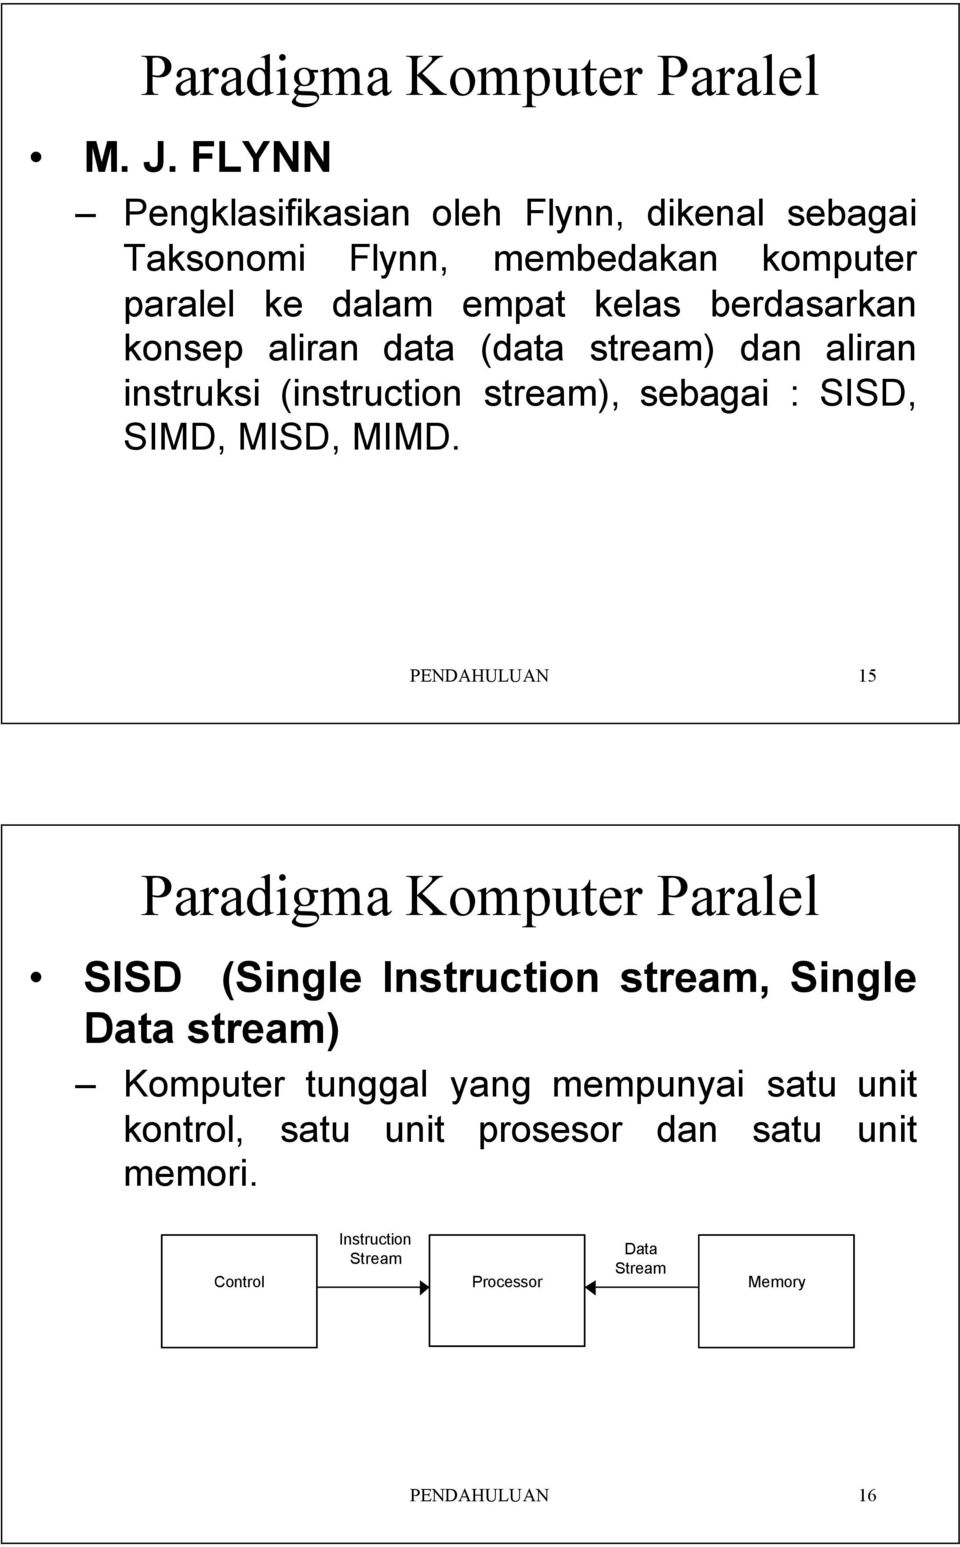 : SISD, SIMD, MISD, MIMD PENDAHULUAN 15 Paradigma Komputer Paralel SISD (Single Instruction stream, Single stream) Komputer